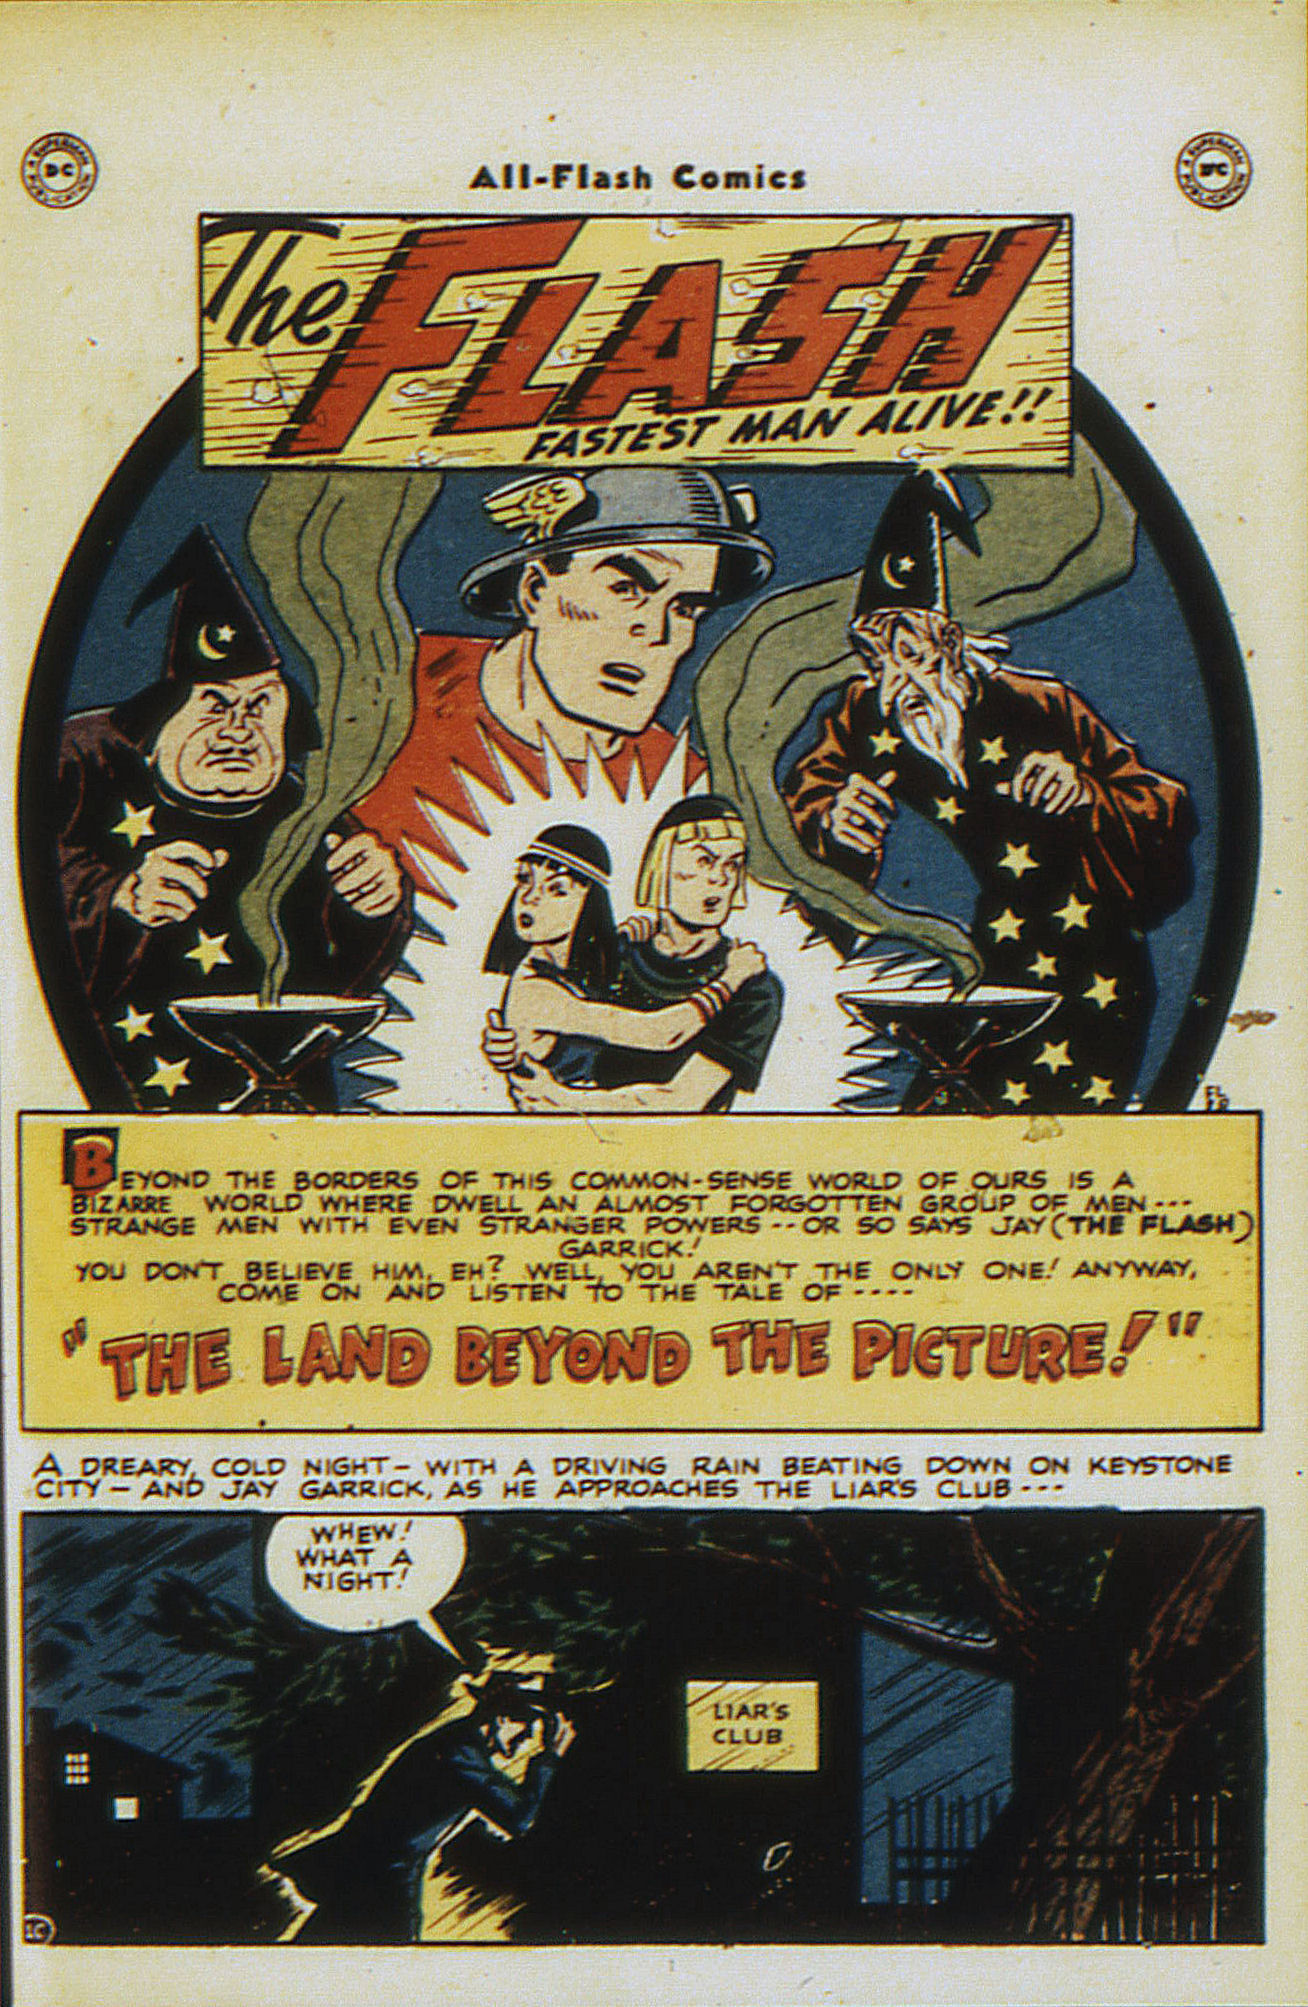 Read online All-Flash comic -  Issue #30 - 39